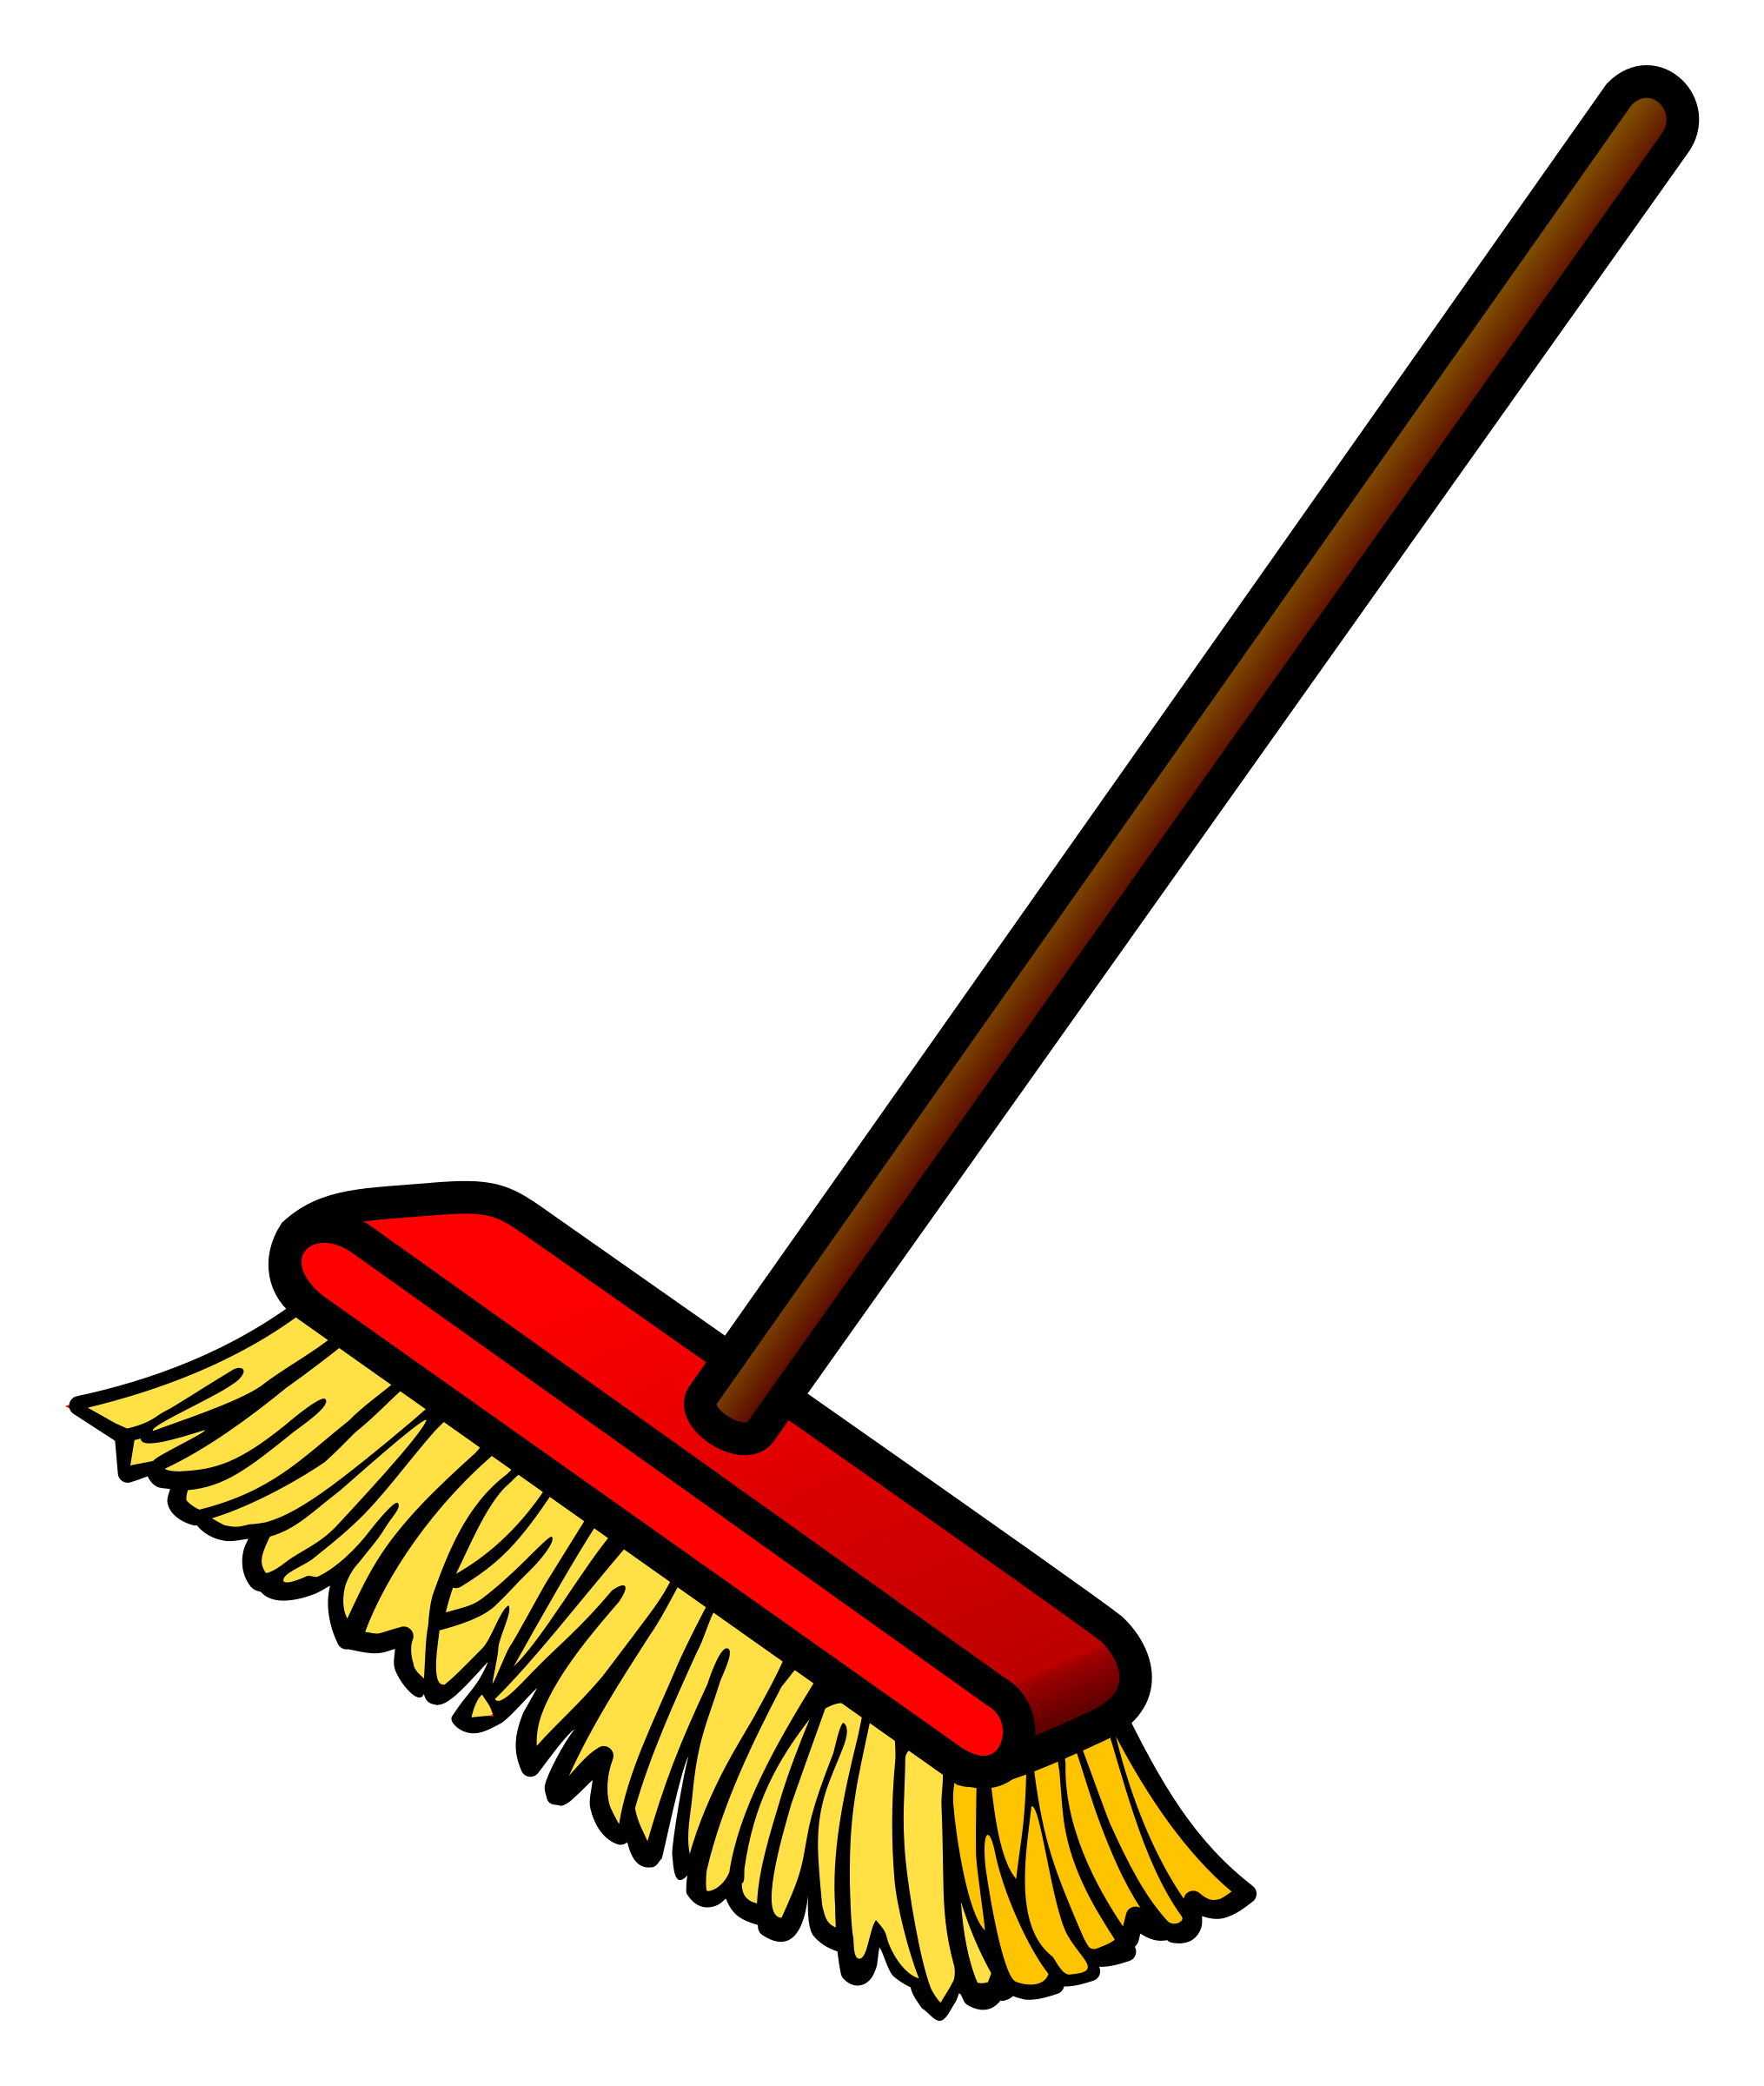 Broom clipart walis, Picture #2320666 broom clipart walis.